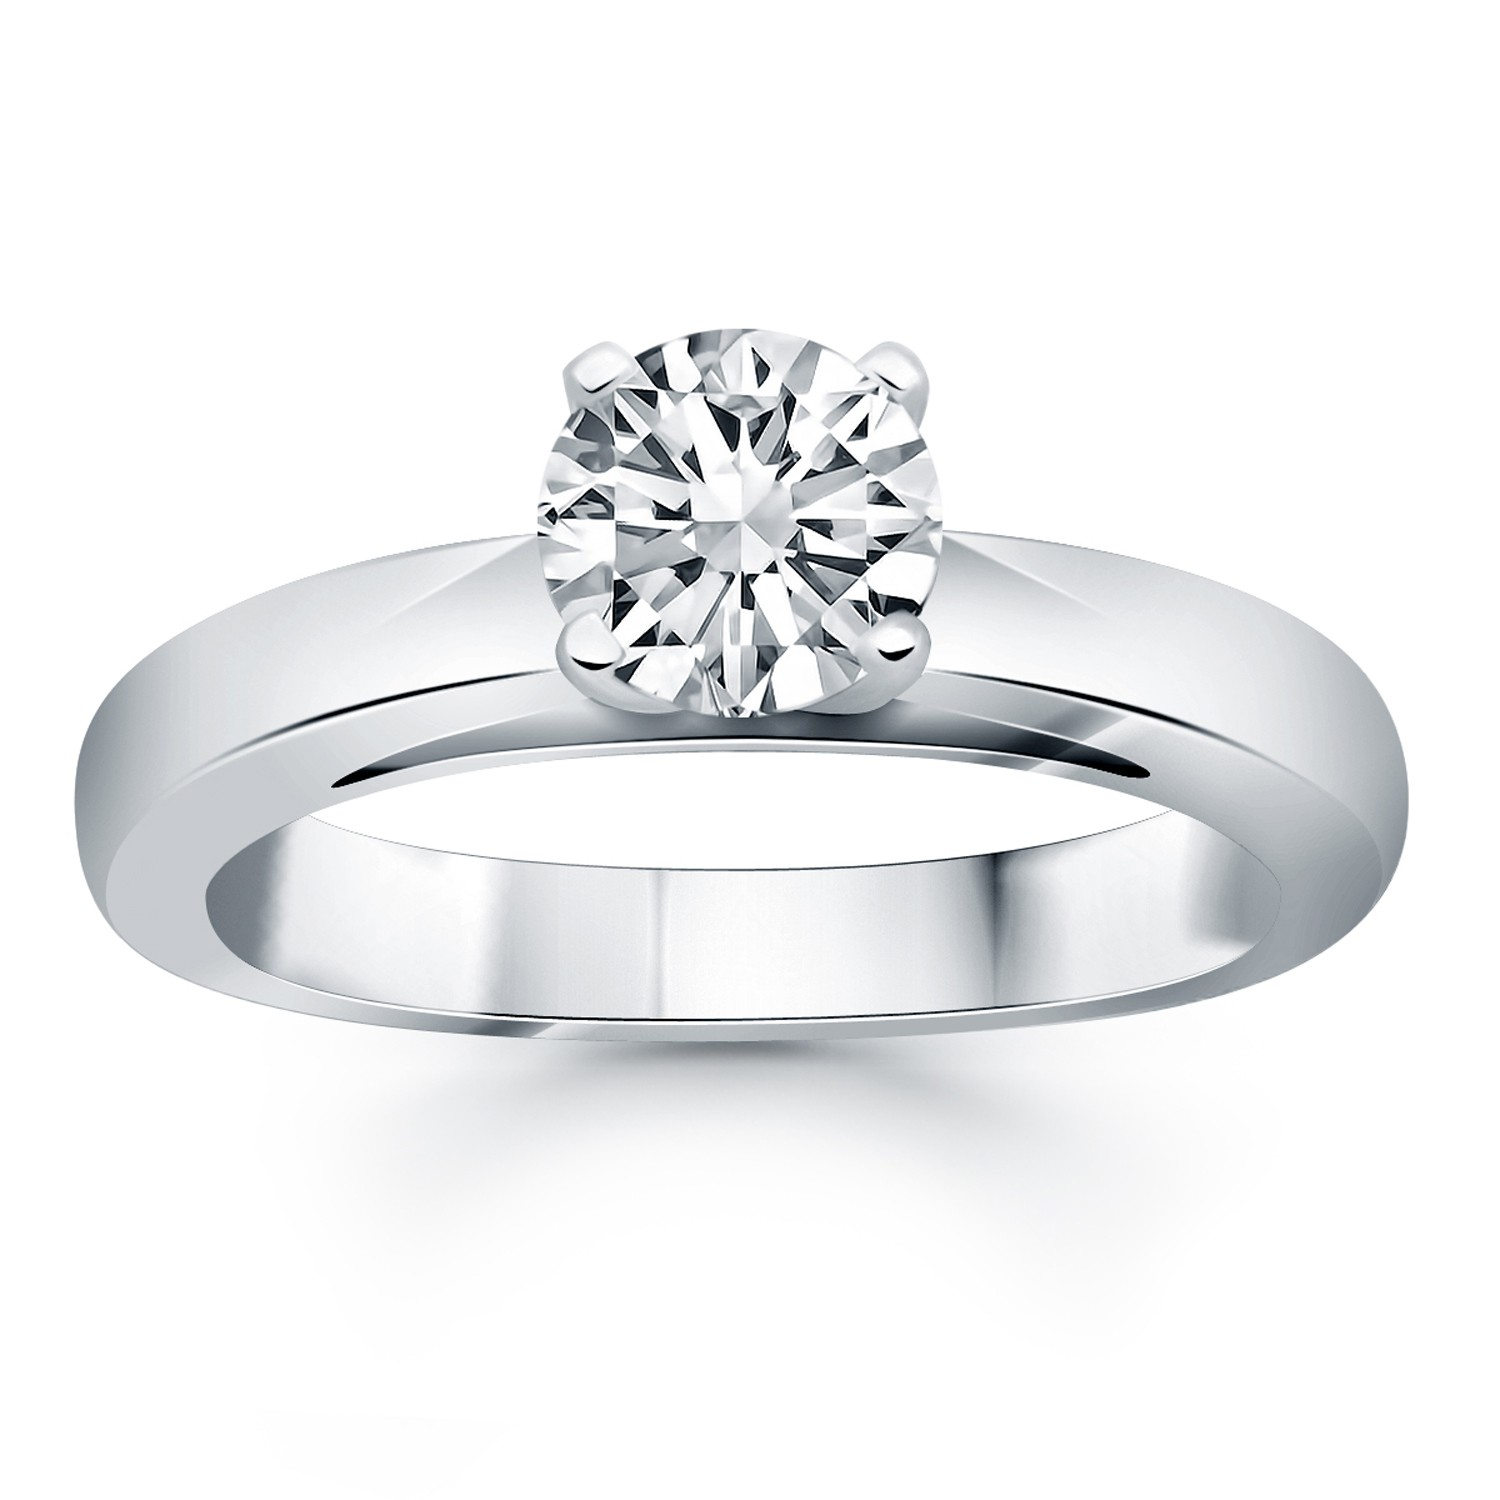 14k white gold classic wide band cathedral solitaire